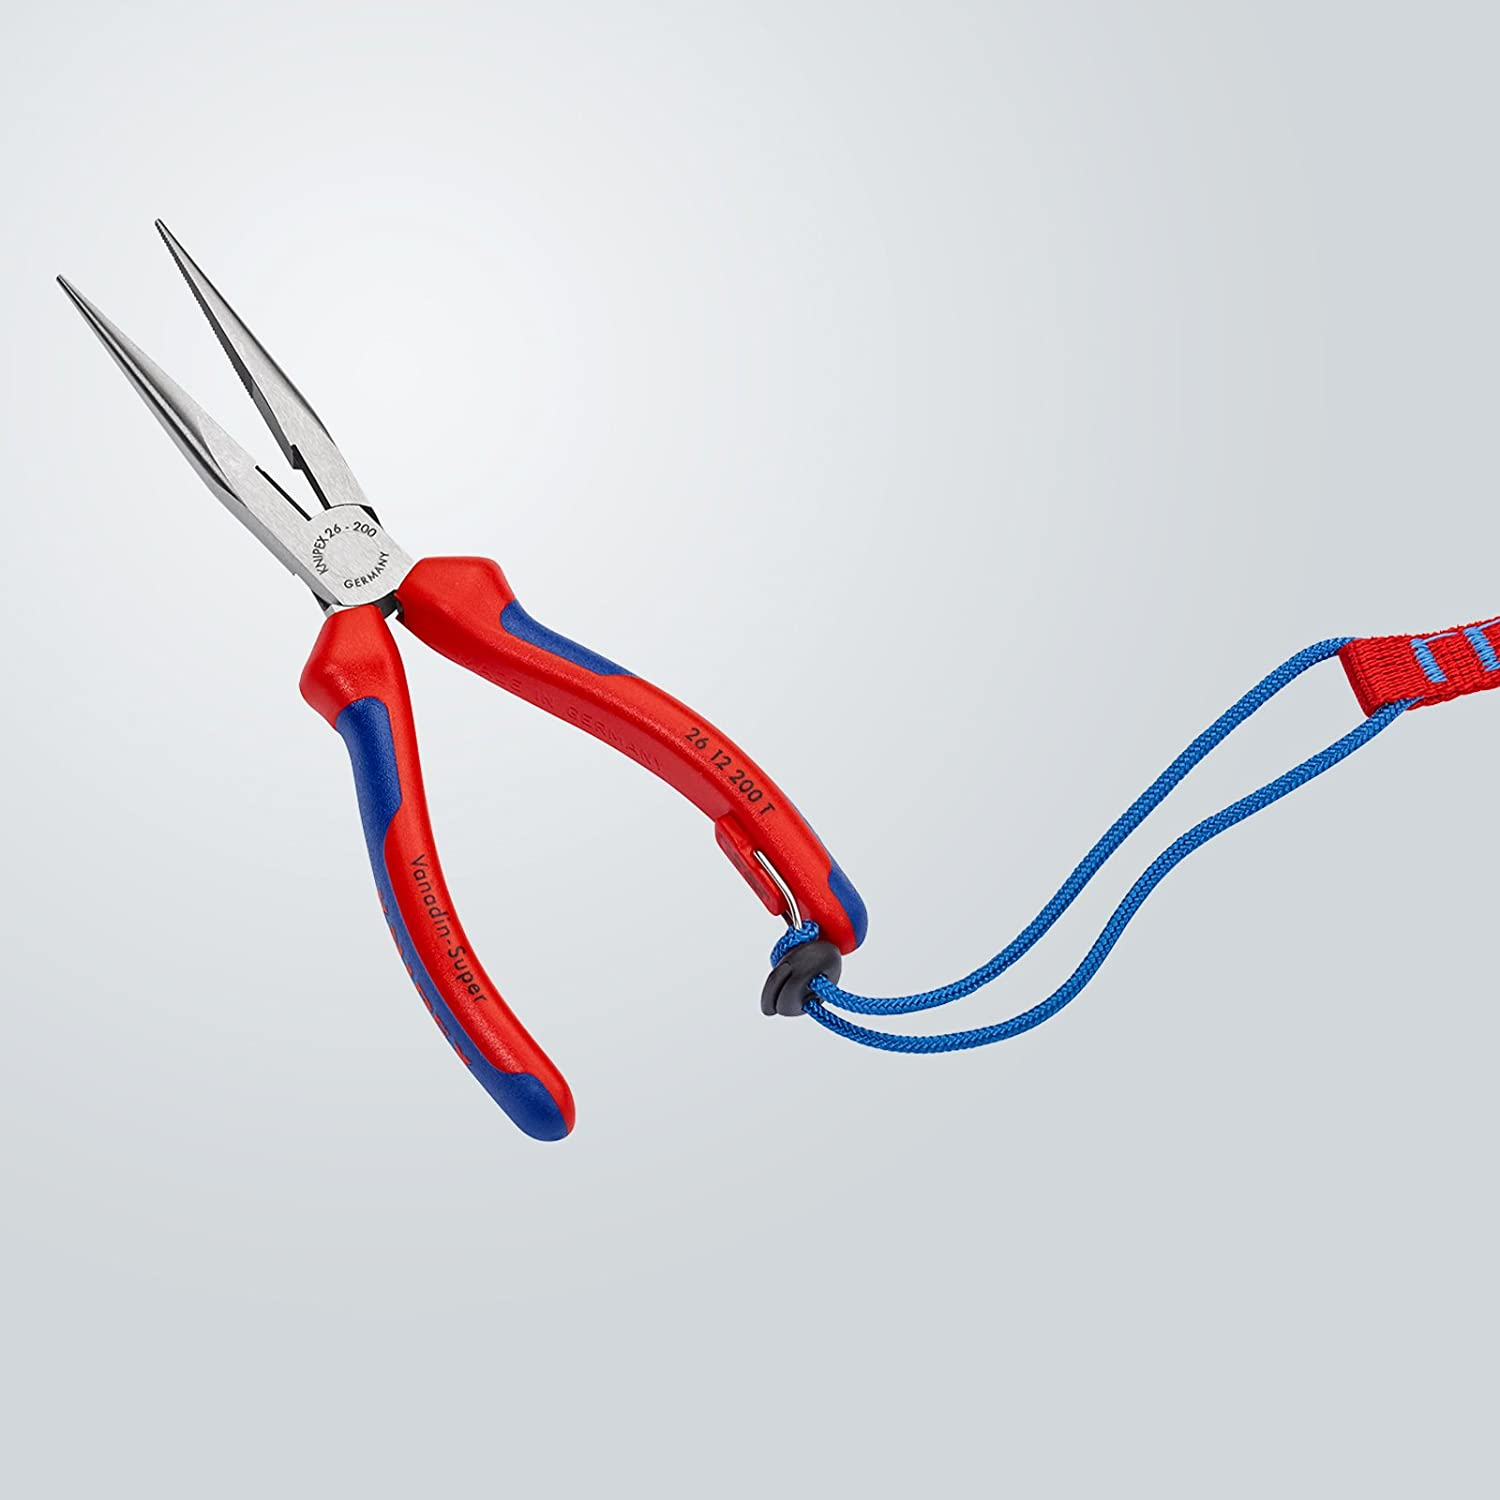 Knipex 26 12 200 T Stork Beak Pliers with tether attachment point 7, 87